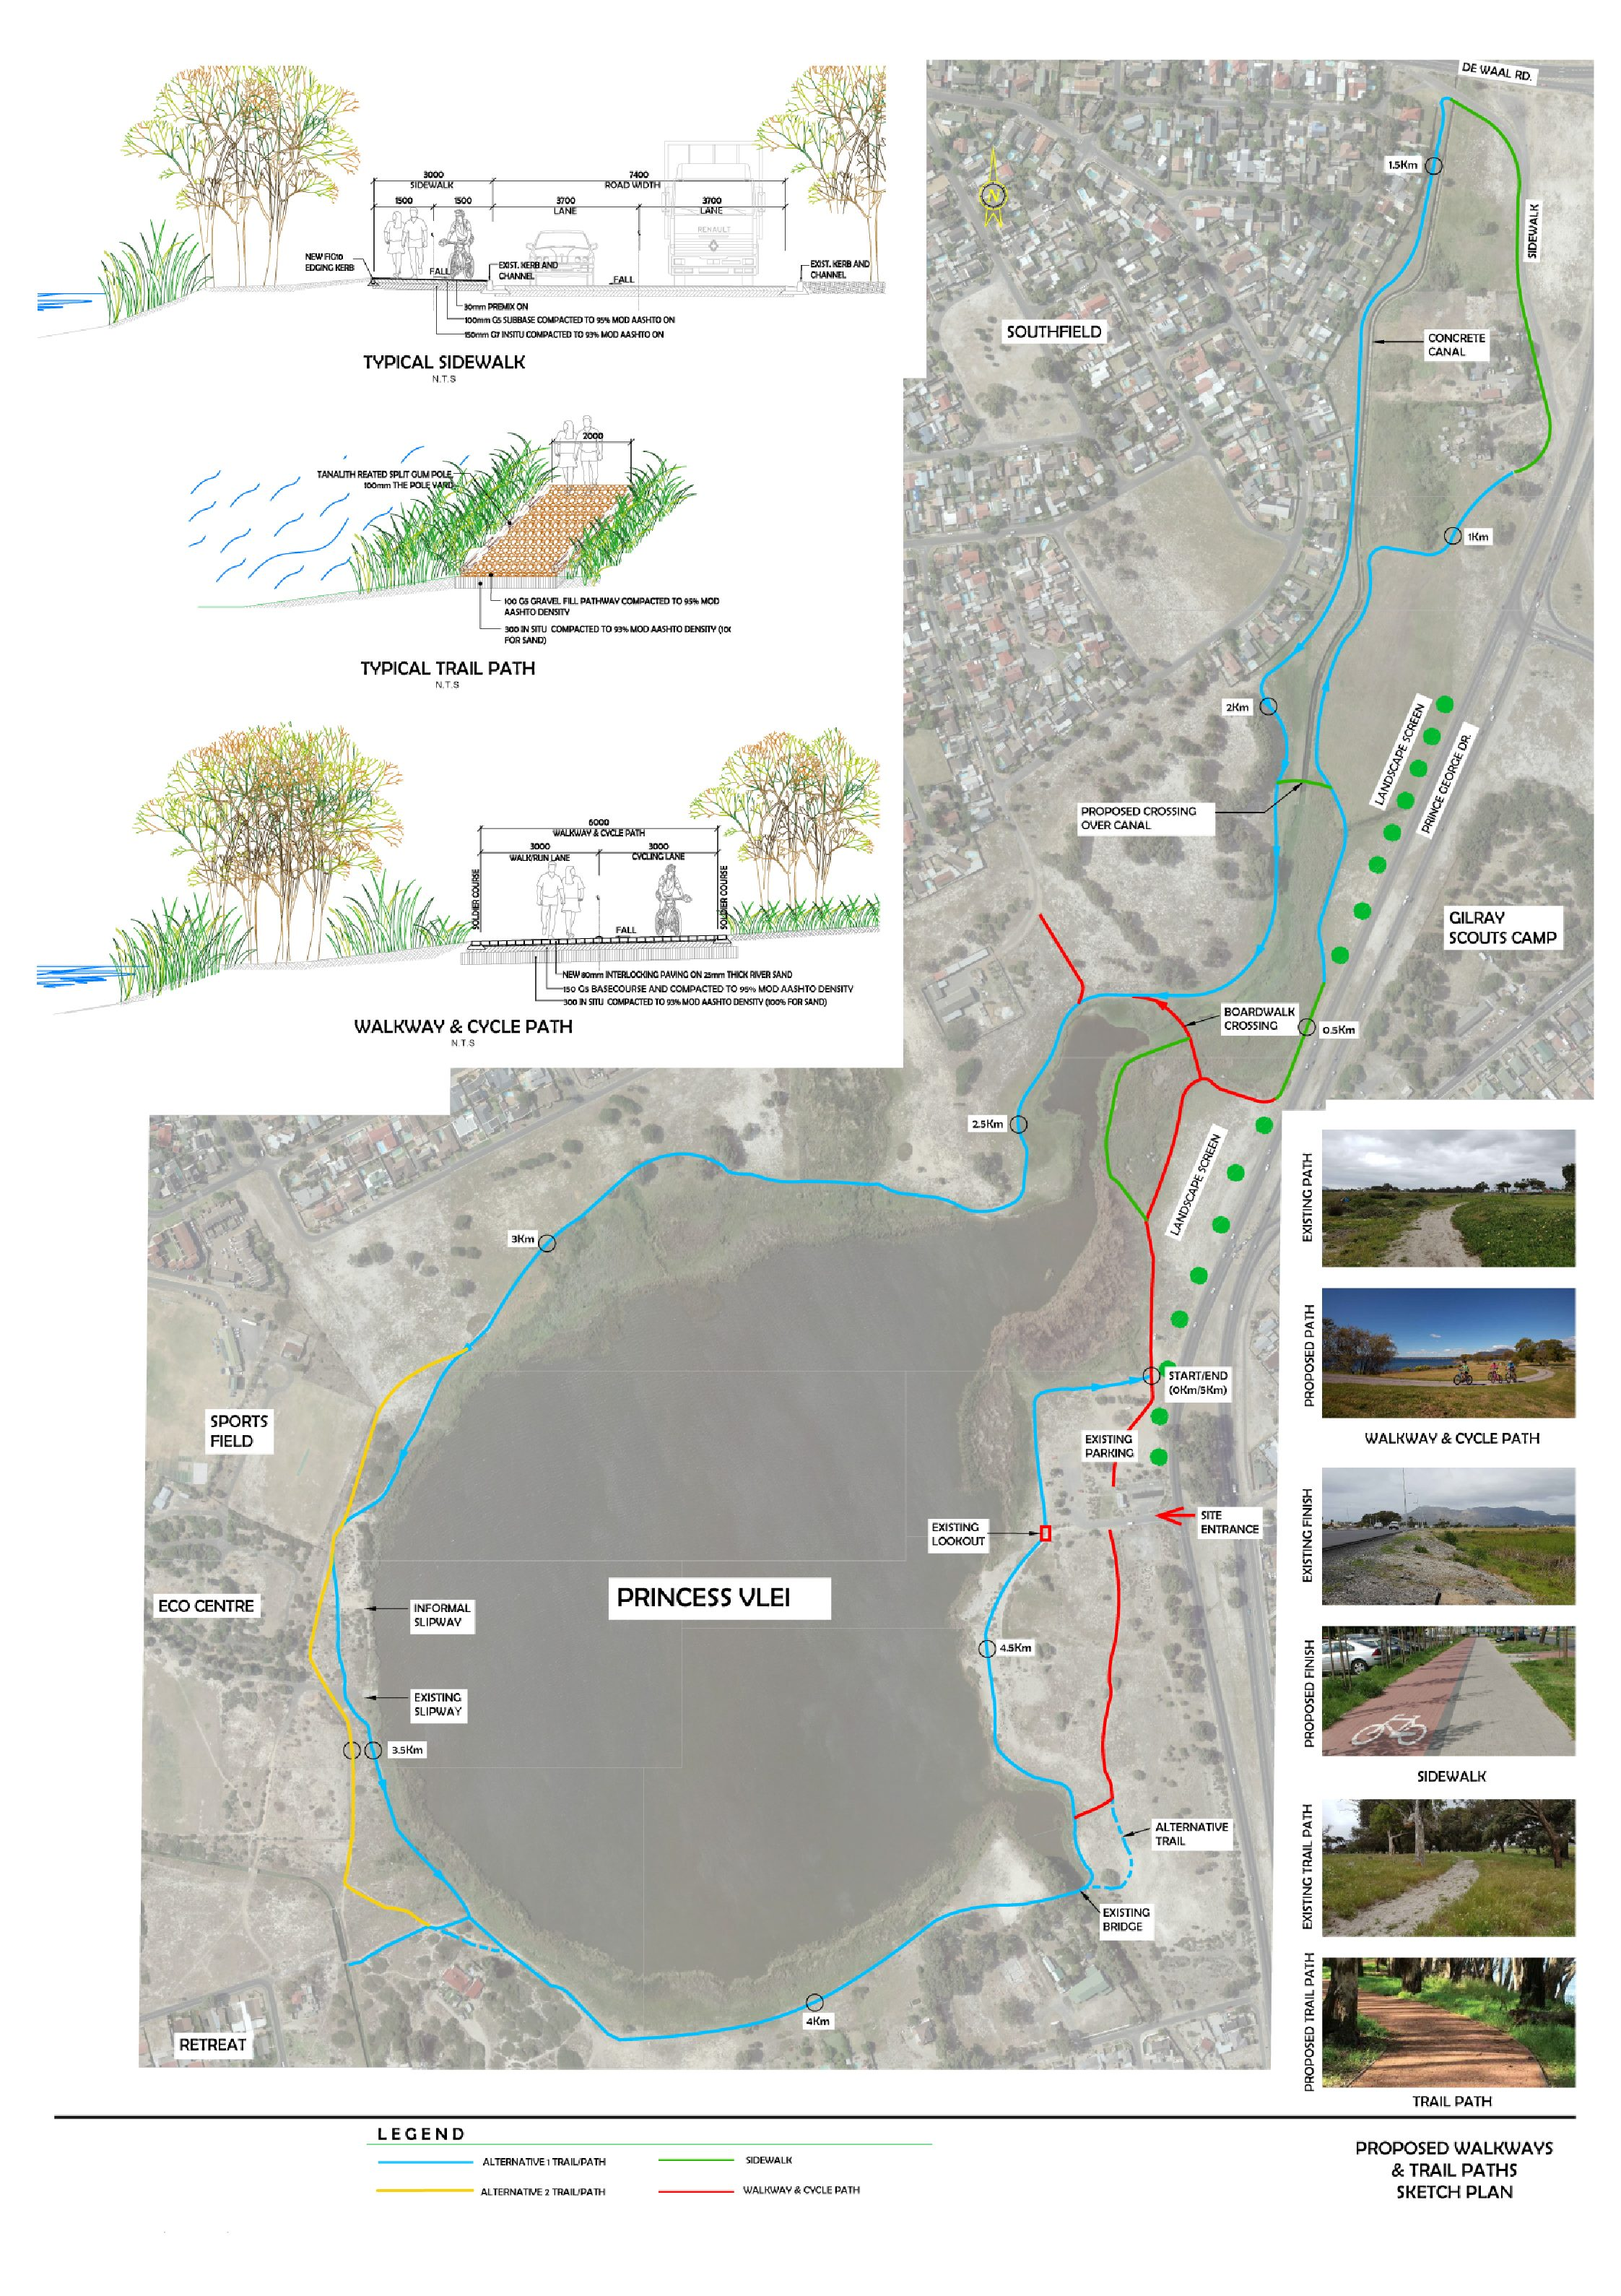 NOTIFICATION OF ENVIRONMENTAL AUTHORISATION – ENVIRONMENTAL IMPACT ASSESSMENT FOR THE PROPOSED CONSTRUCTION OF A CIRCULATORY TRAIL AROUND THE PRINCESS VLEI AND THE UPGRADING OF ASSOCIATED FACILITIES IN THE PRINCESS VLEI PARK, RETREAT, WESTERN CAPE. DEA&DP REFERENCE: 16/3/3/1/A6/64/2057/19